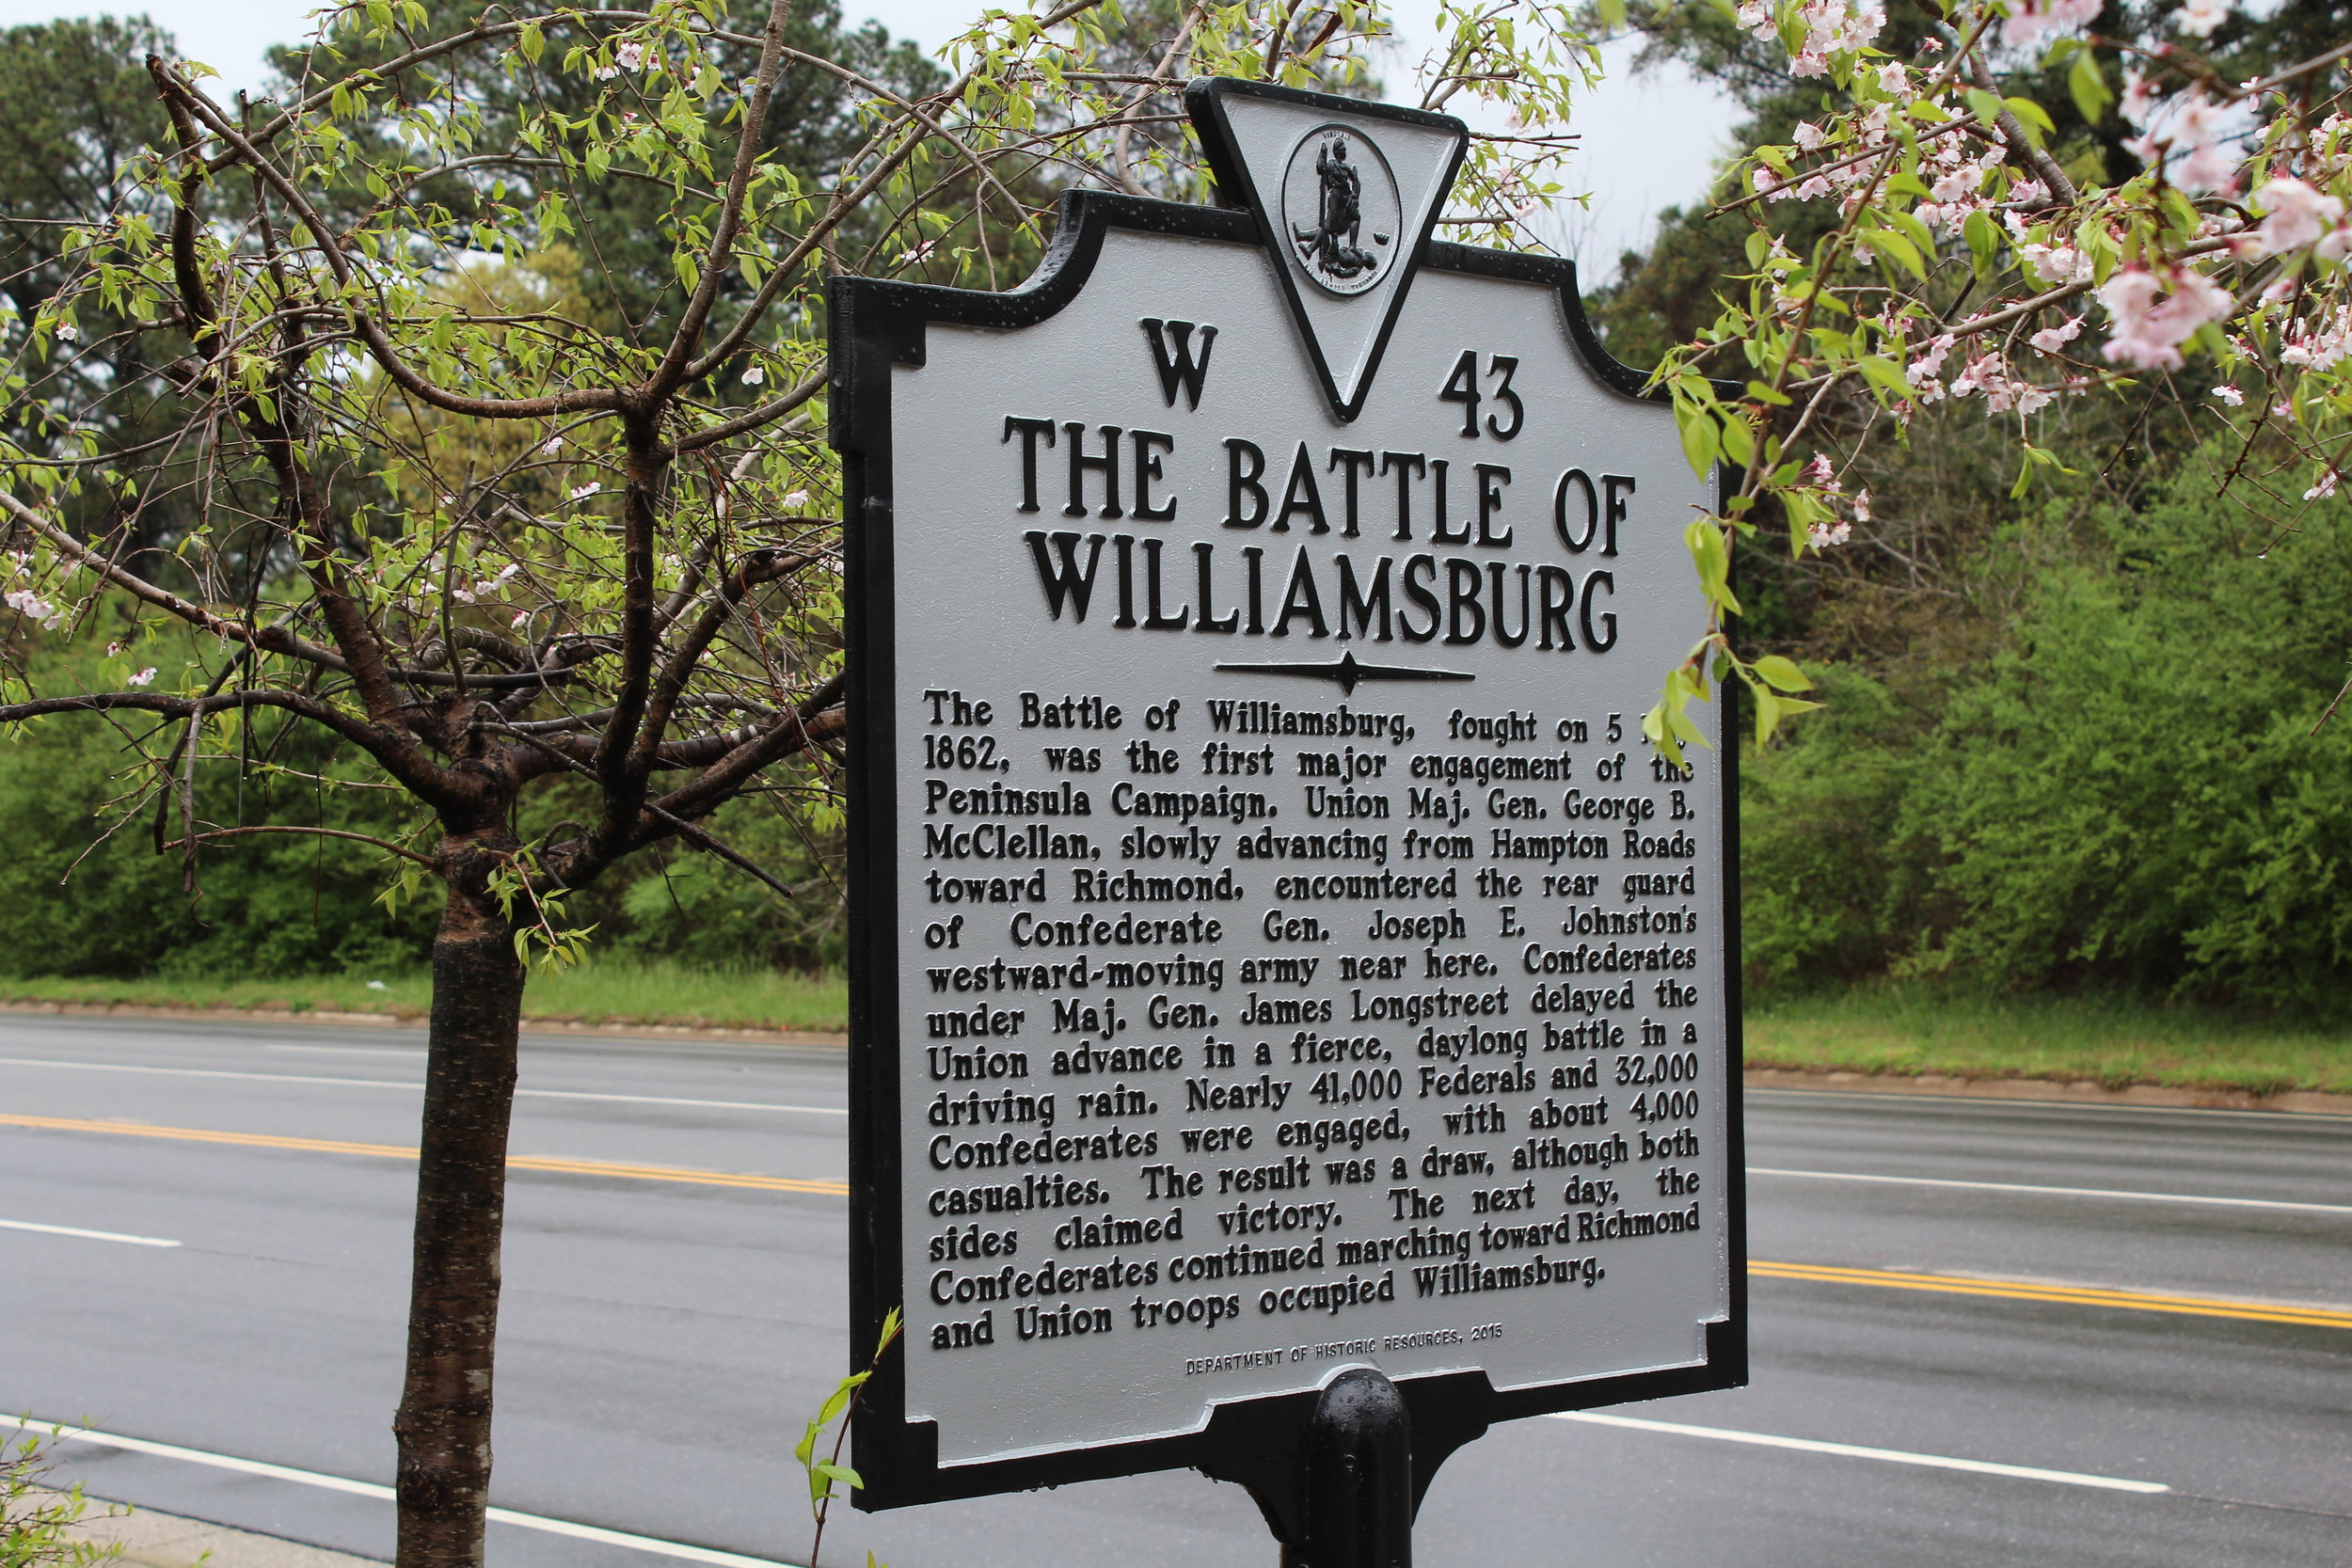 New Historical Highway Marker